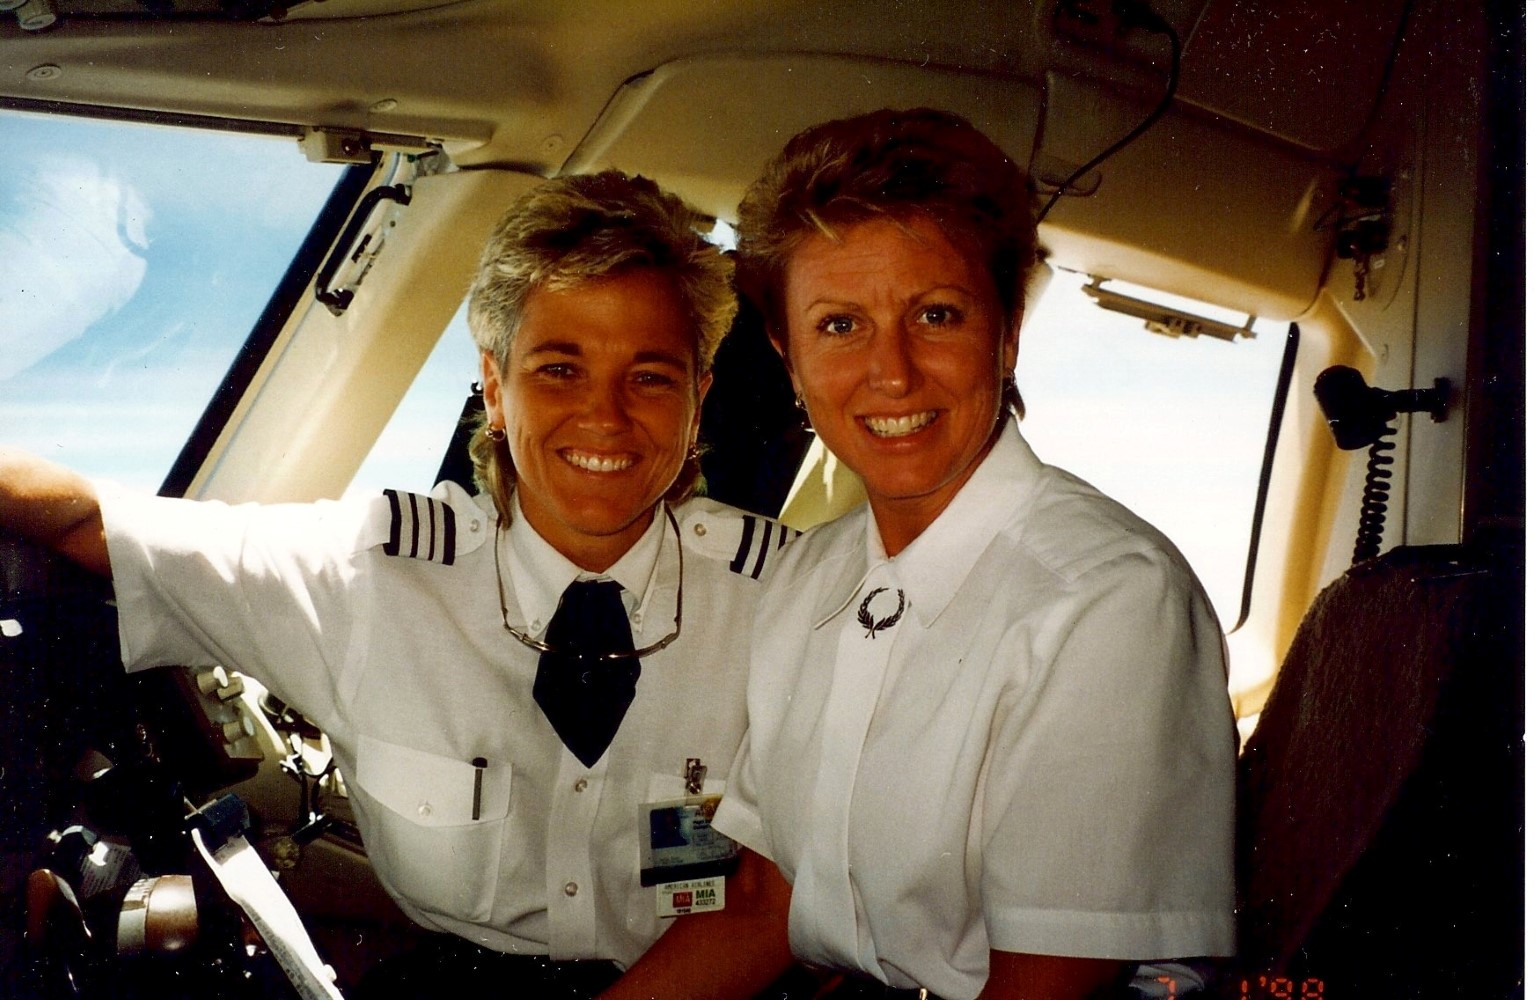 Durst and her wife, now retired flight attendant, Sher Dye recently celebrated their 20 year anniversary. Image: Kathi Durst